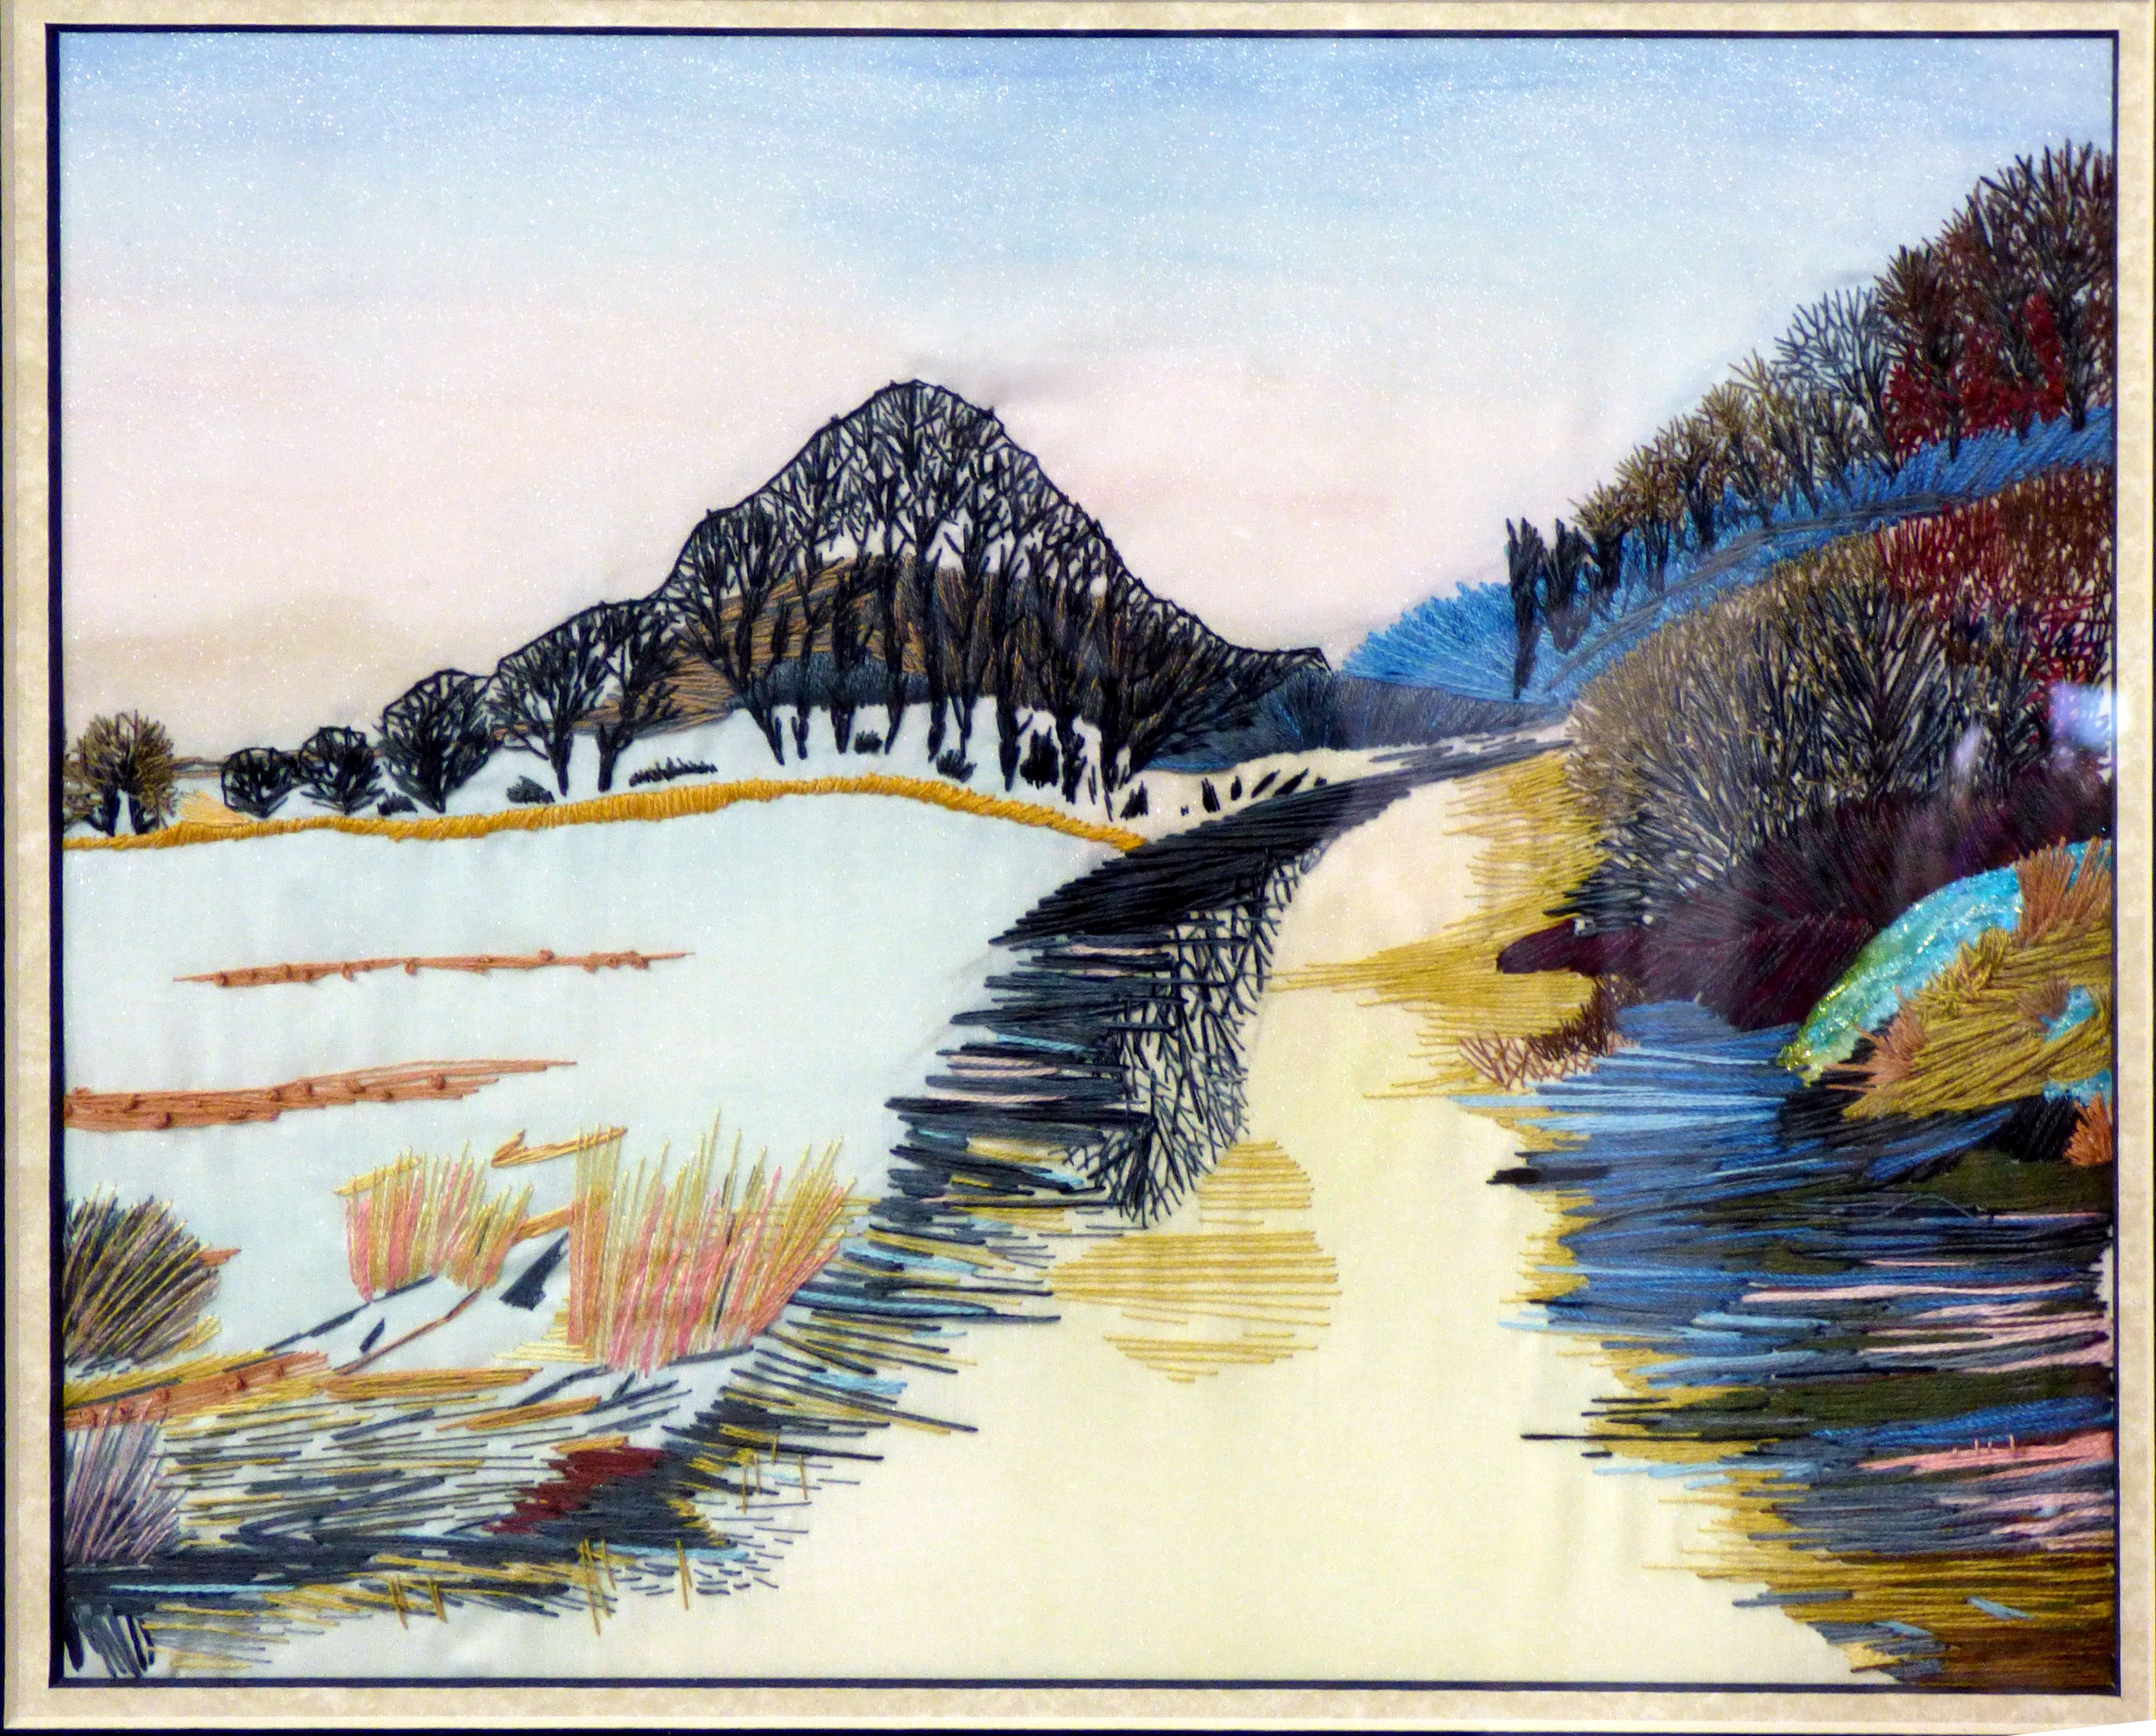 LAKESIDE COLOURS by Linda Horden, N.Wales EG, hand embroidery on silk